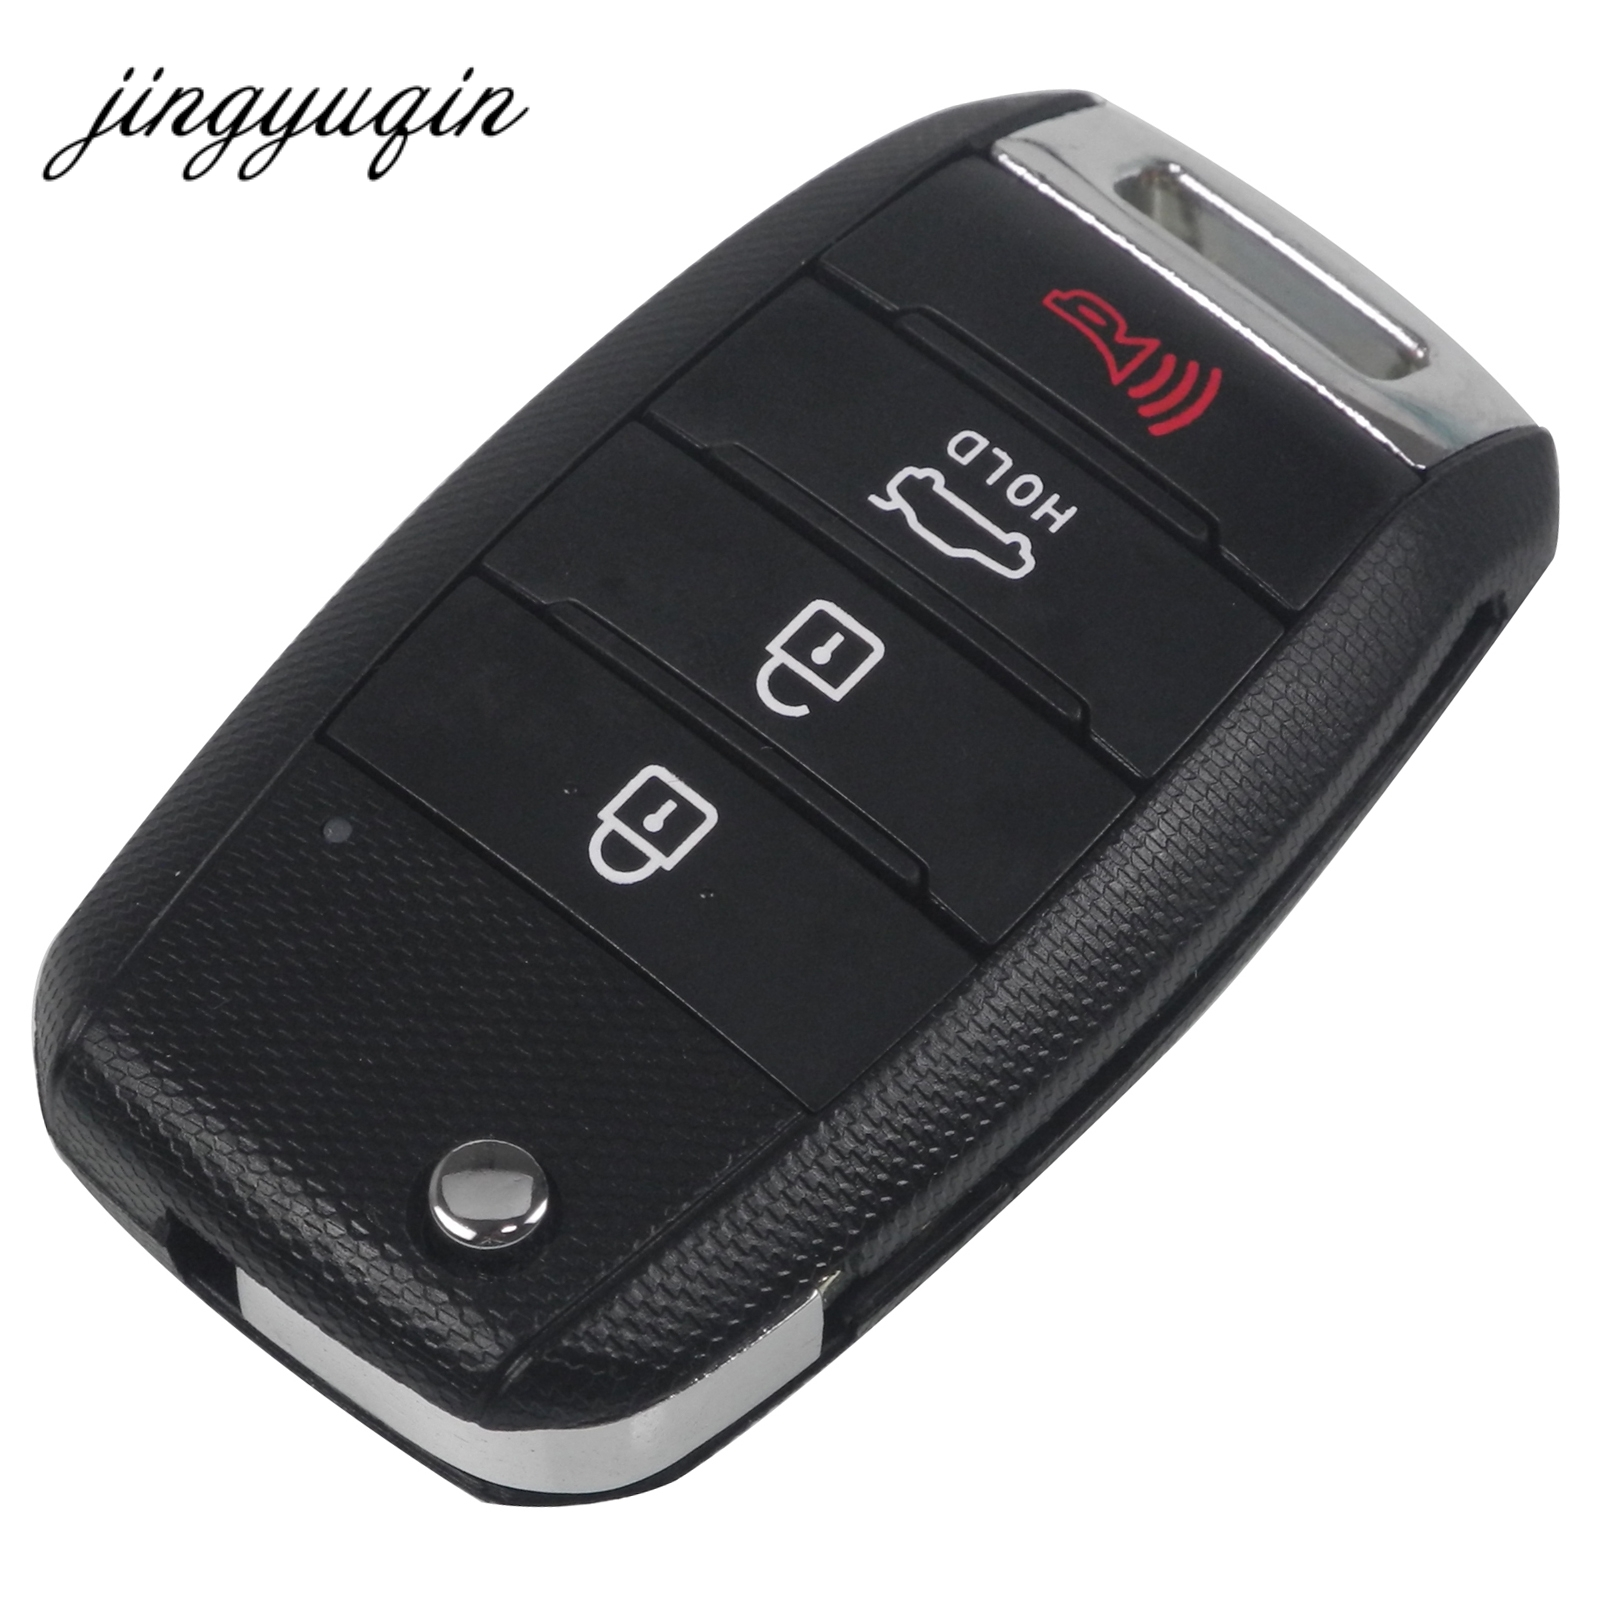 jingyuqin Replacement Key Shell fit for KIA Optima Sorento Soul Carens Sportage Flip Remote Key Entry Case Fob 4 Buttonjingyuqin Replacement Key Shell fit for KIA Optima Sorento Soul Carens Sportage Flip Remote Key Entry Case Fob 4 Button